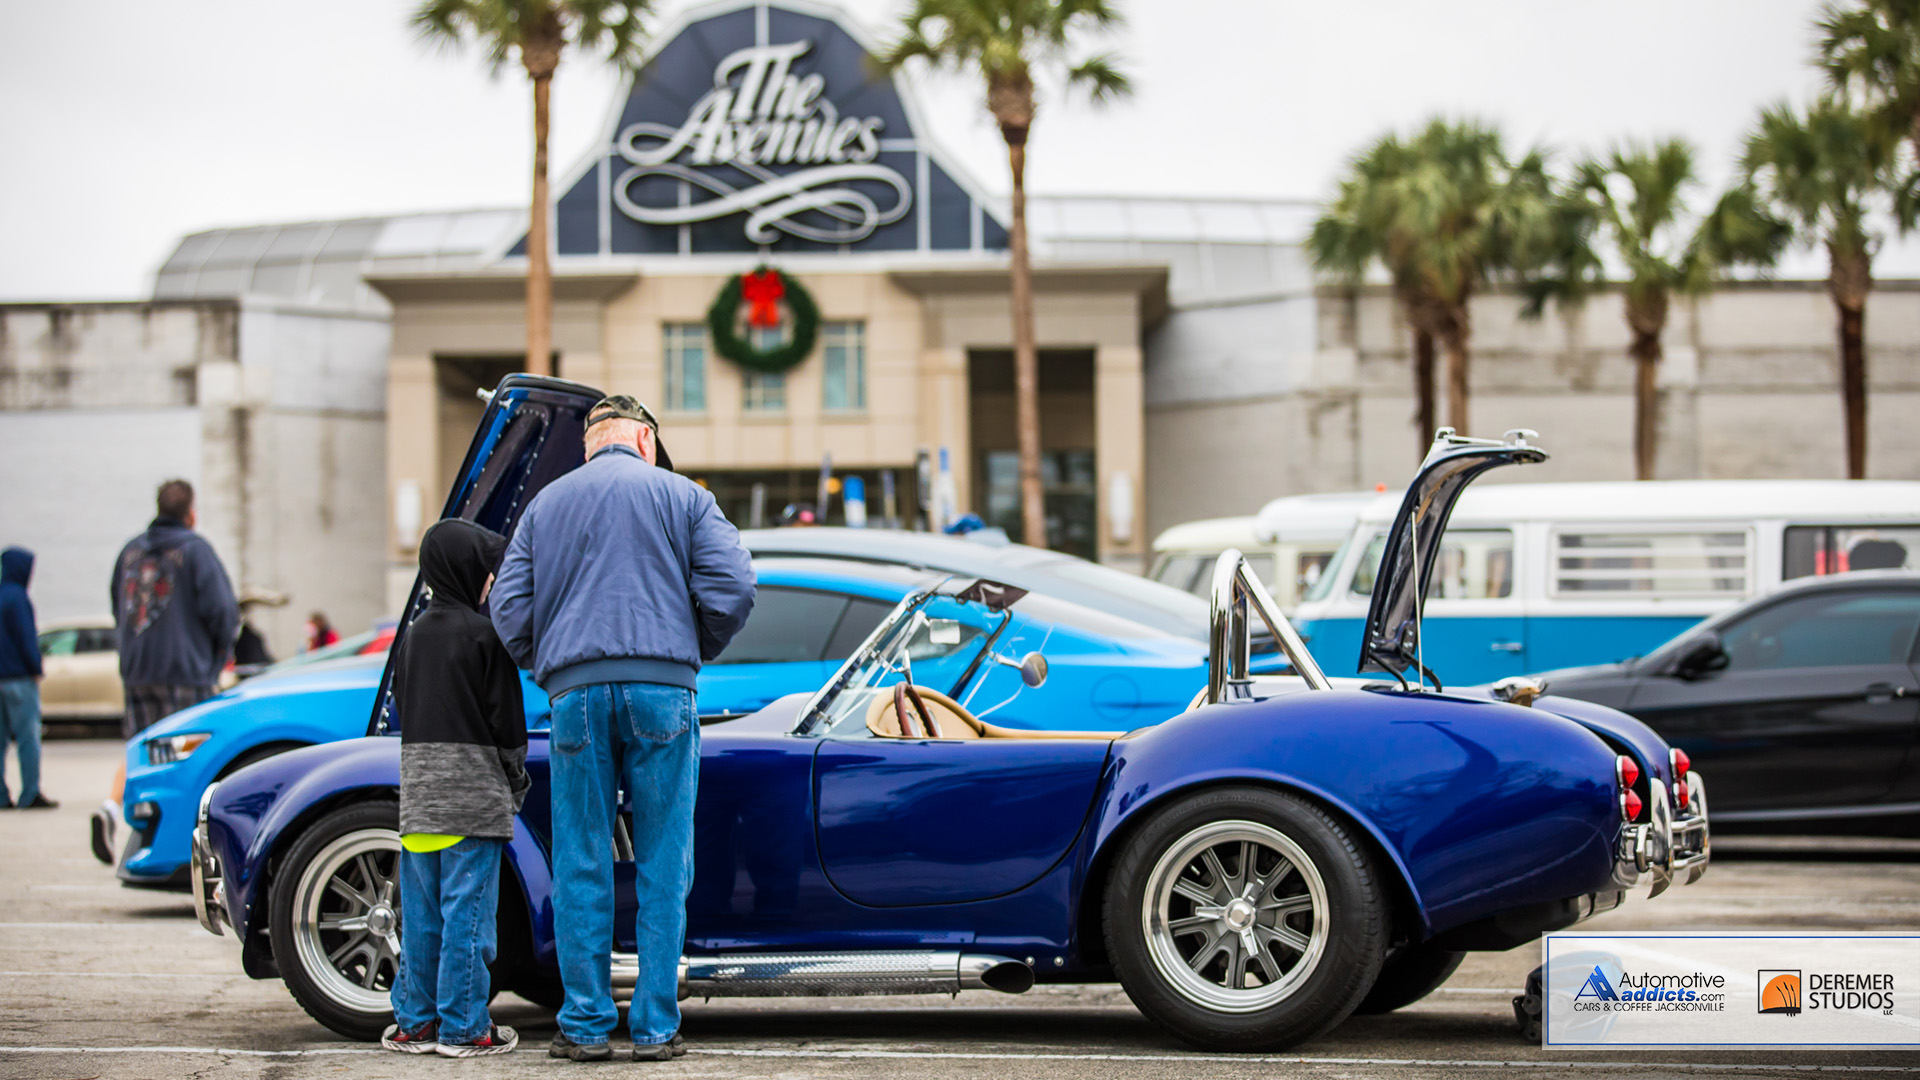 Automotive Addicts Cars & Coffee December 2017 Ushers in Holidays ...